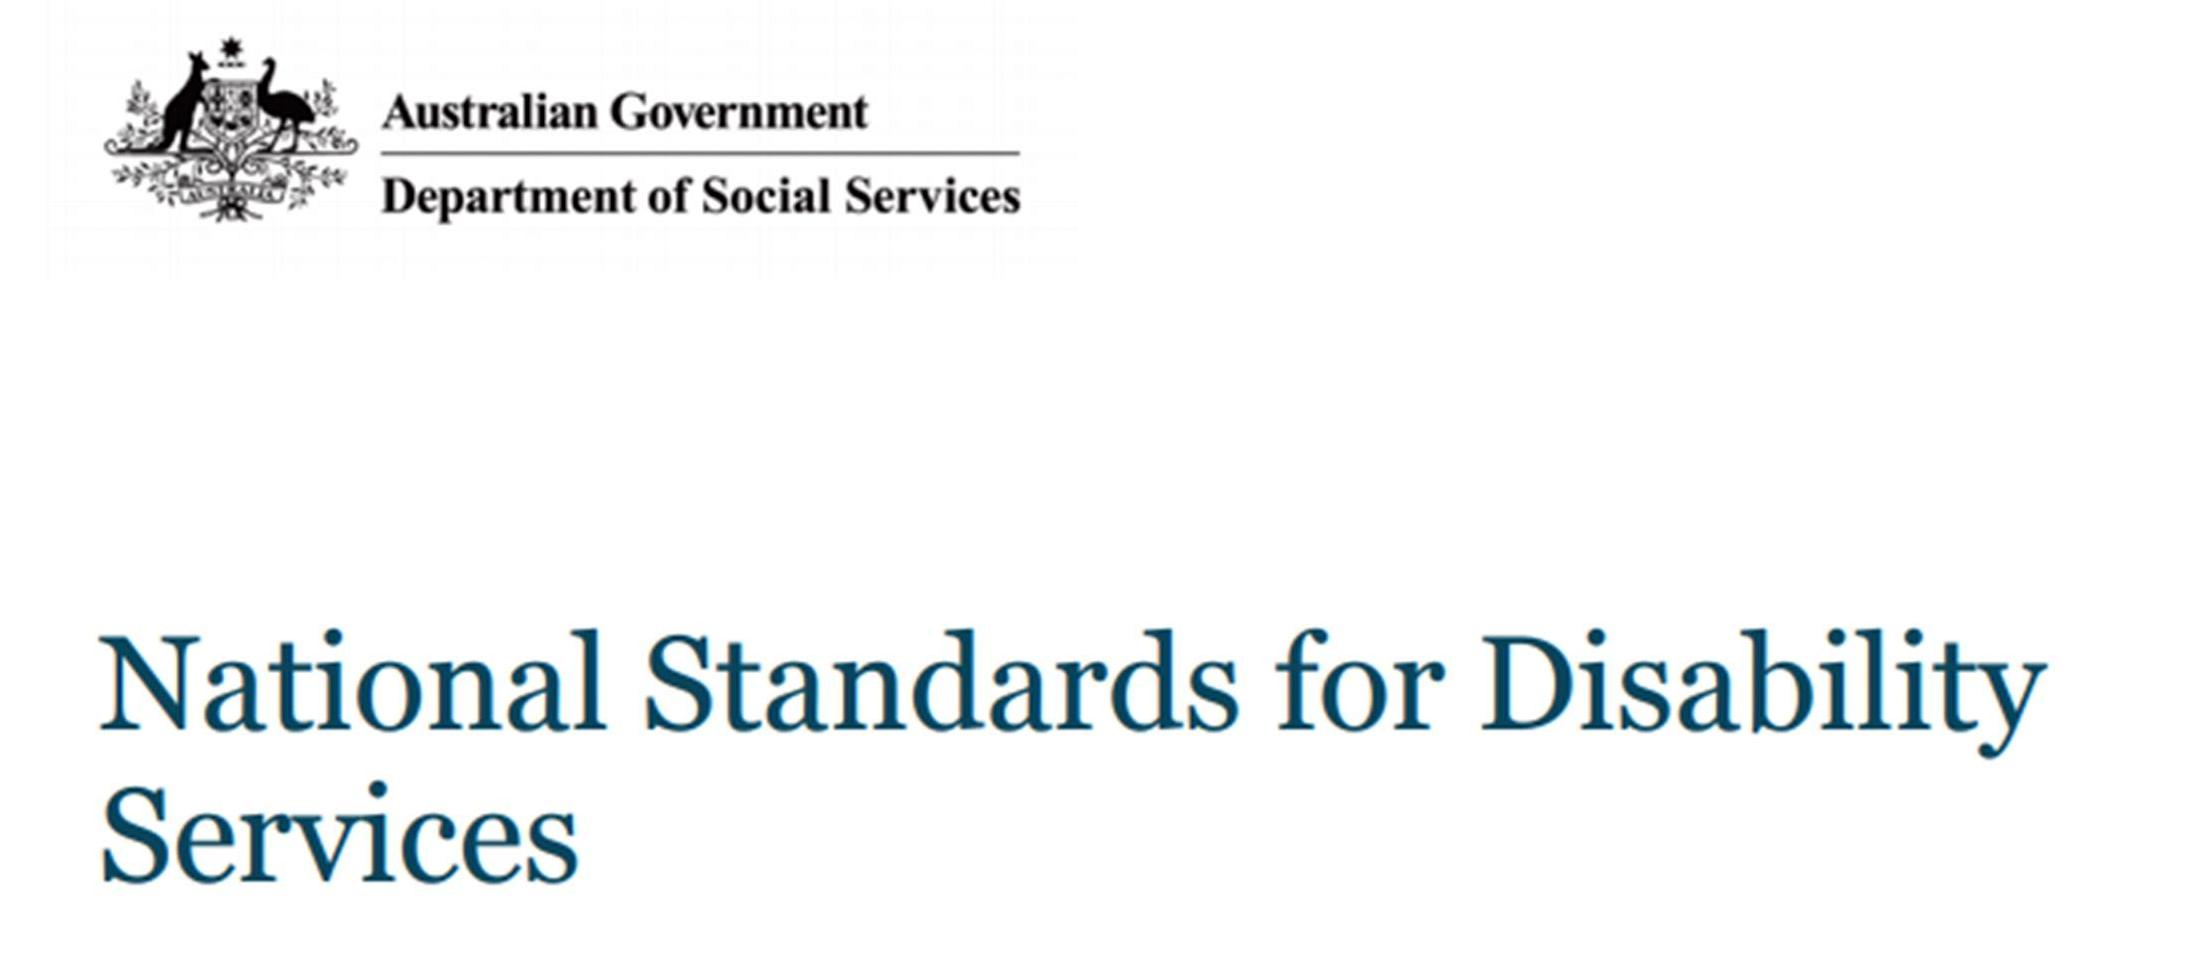 National Standards for Disability Services